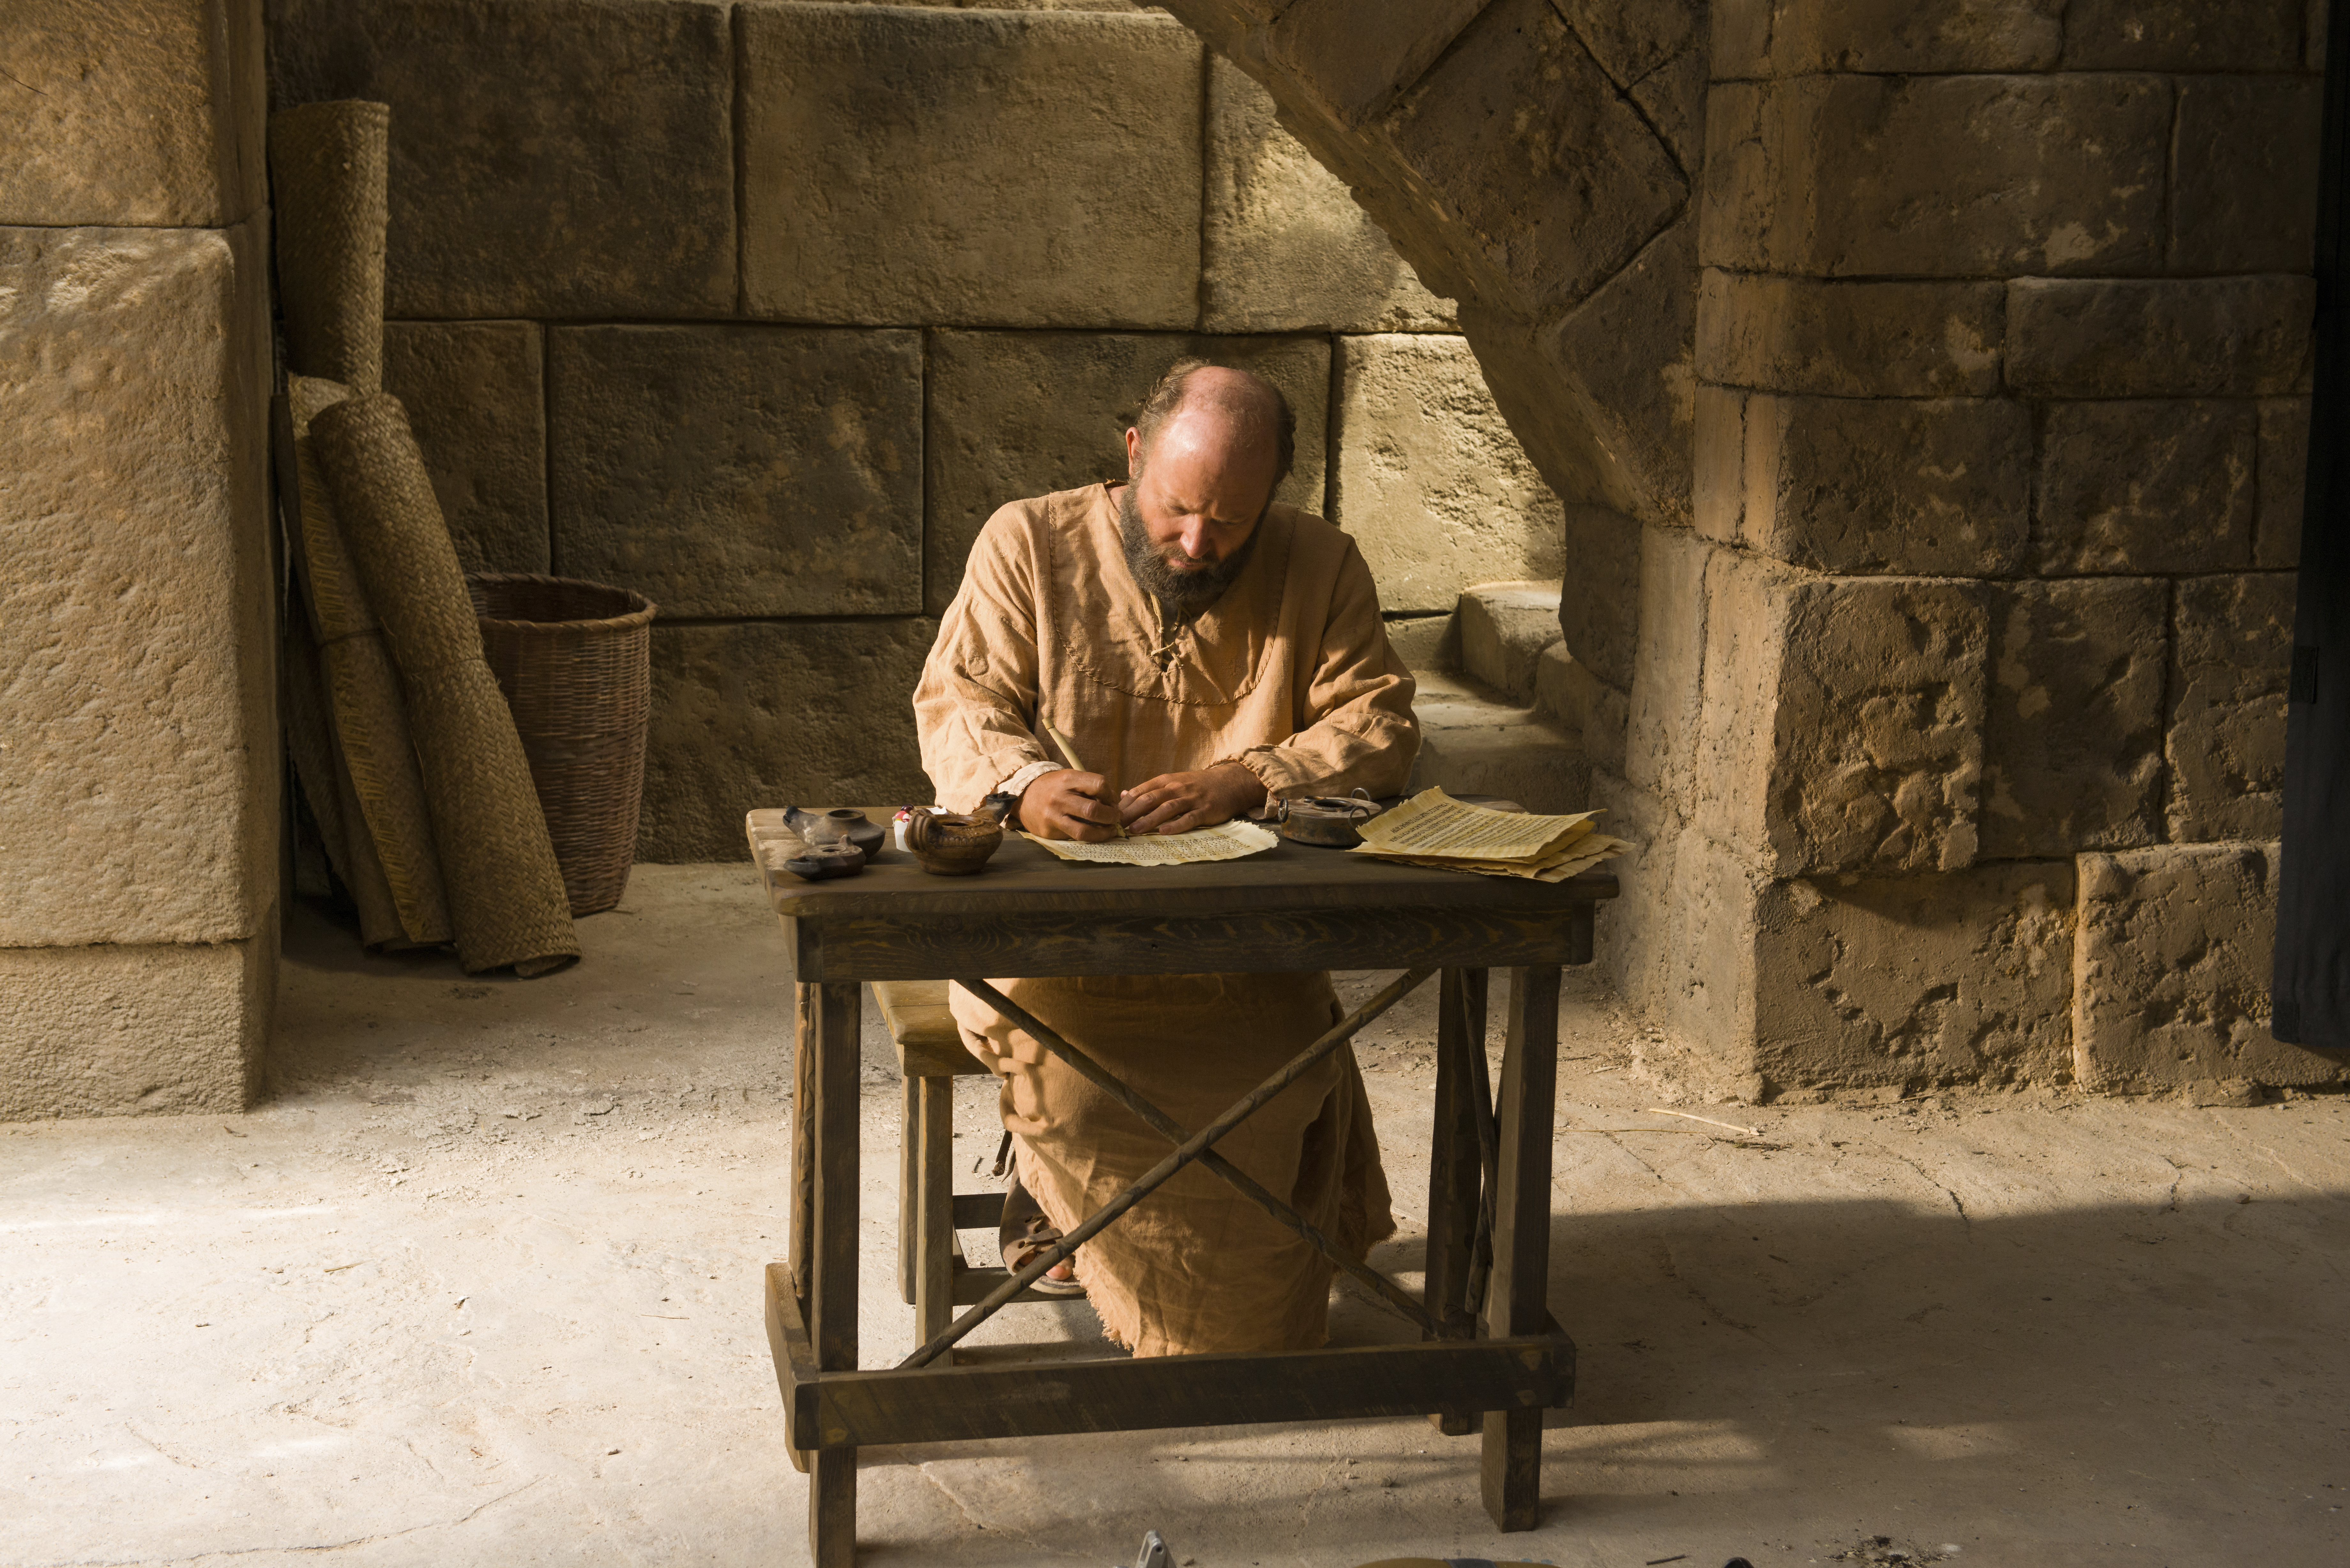 Paul sitting at a table and writing an epistle to the Corinthians.